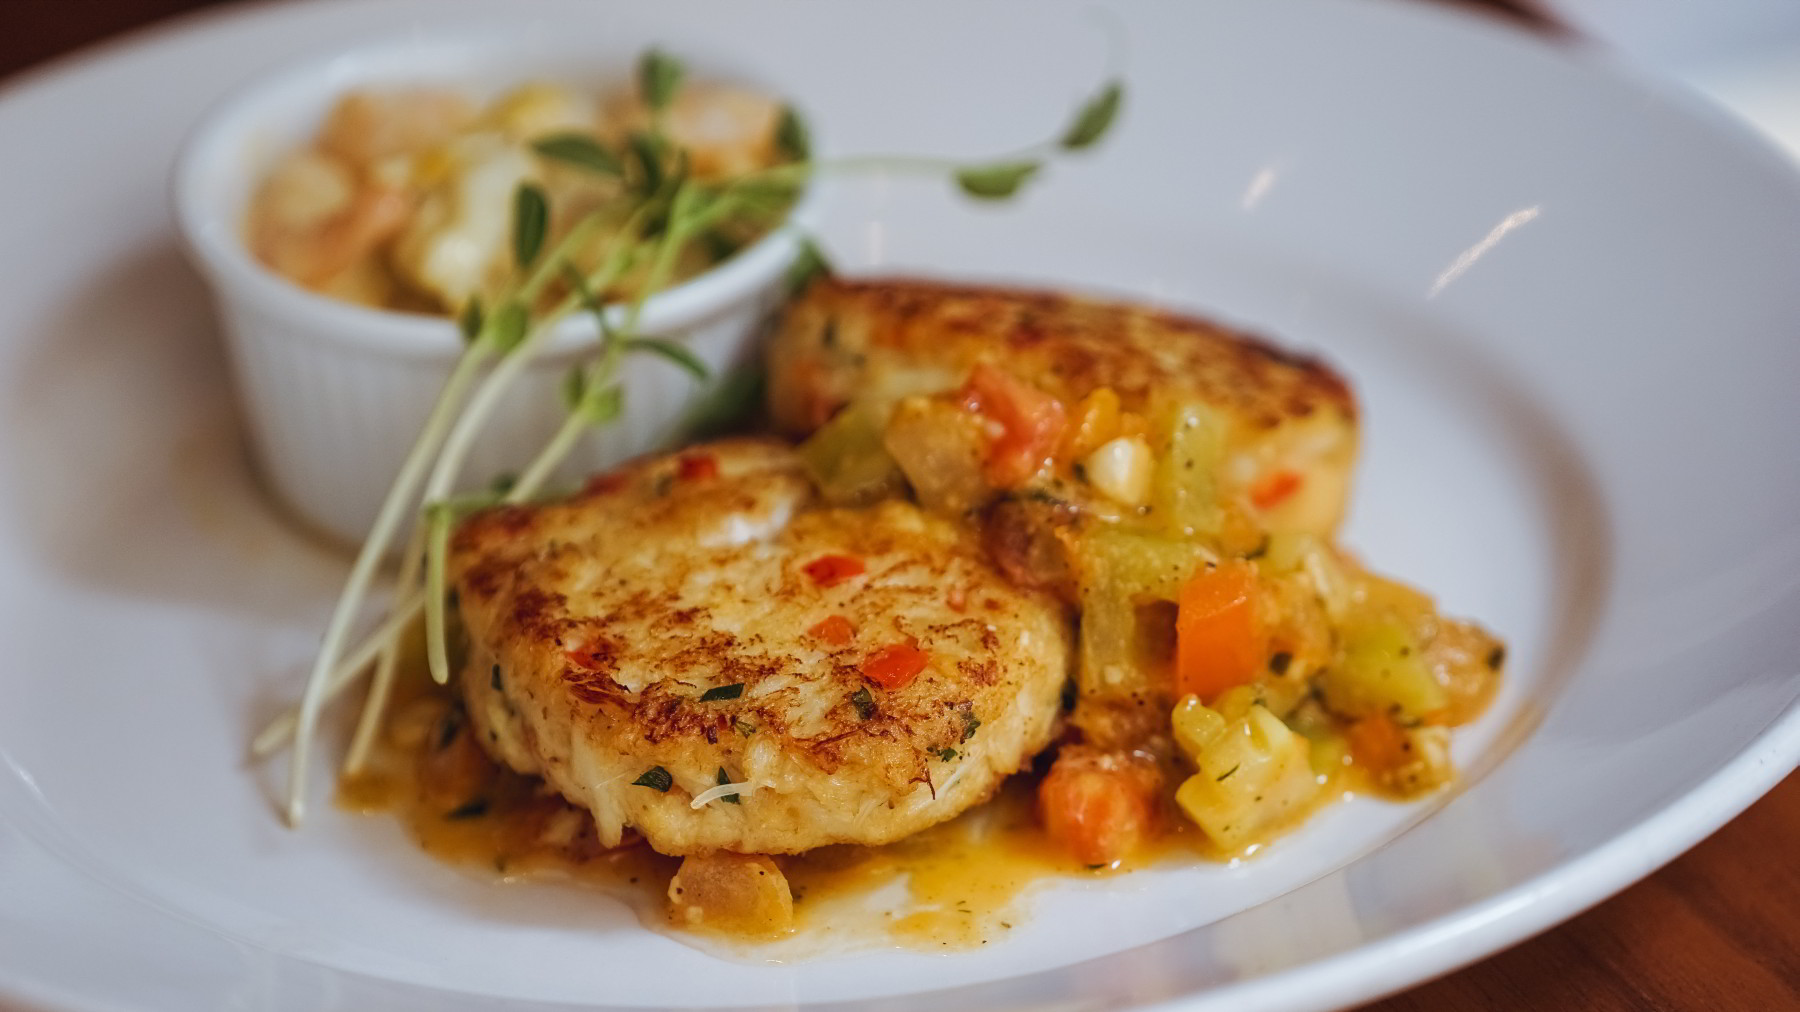 Jumbo Lump Crabcakes with Red & Yellow Tomato Concasse, Hot Crab, Shrimp & Artichoke Dip